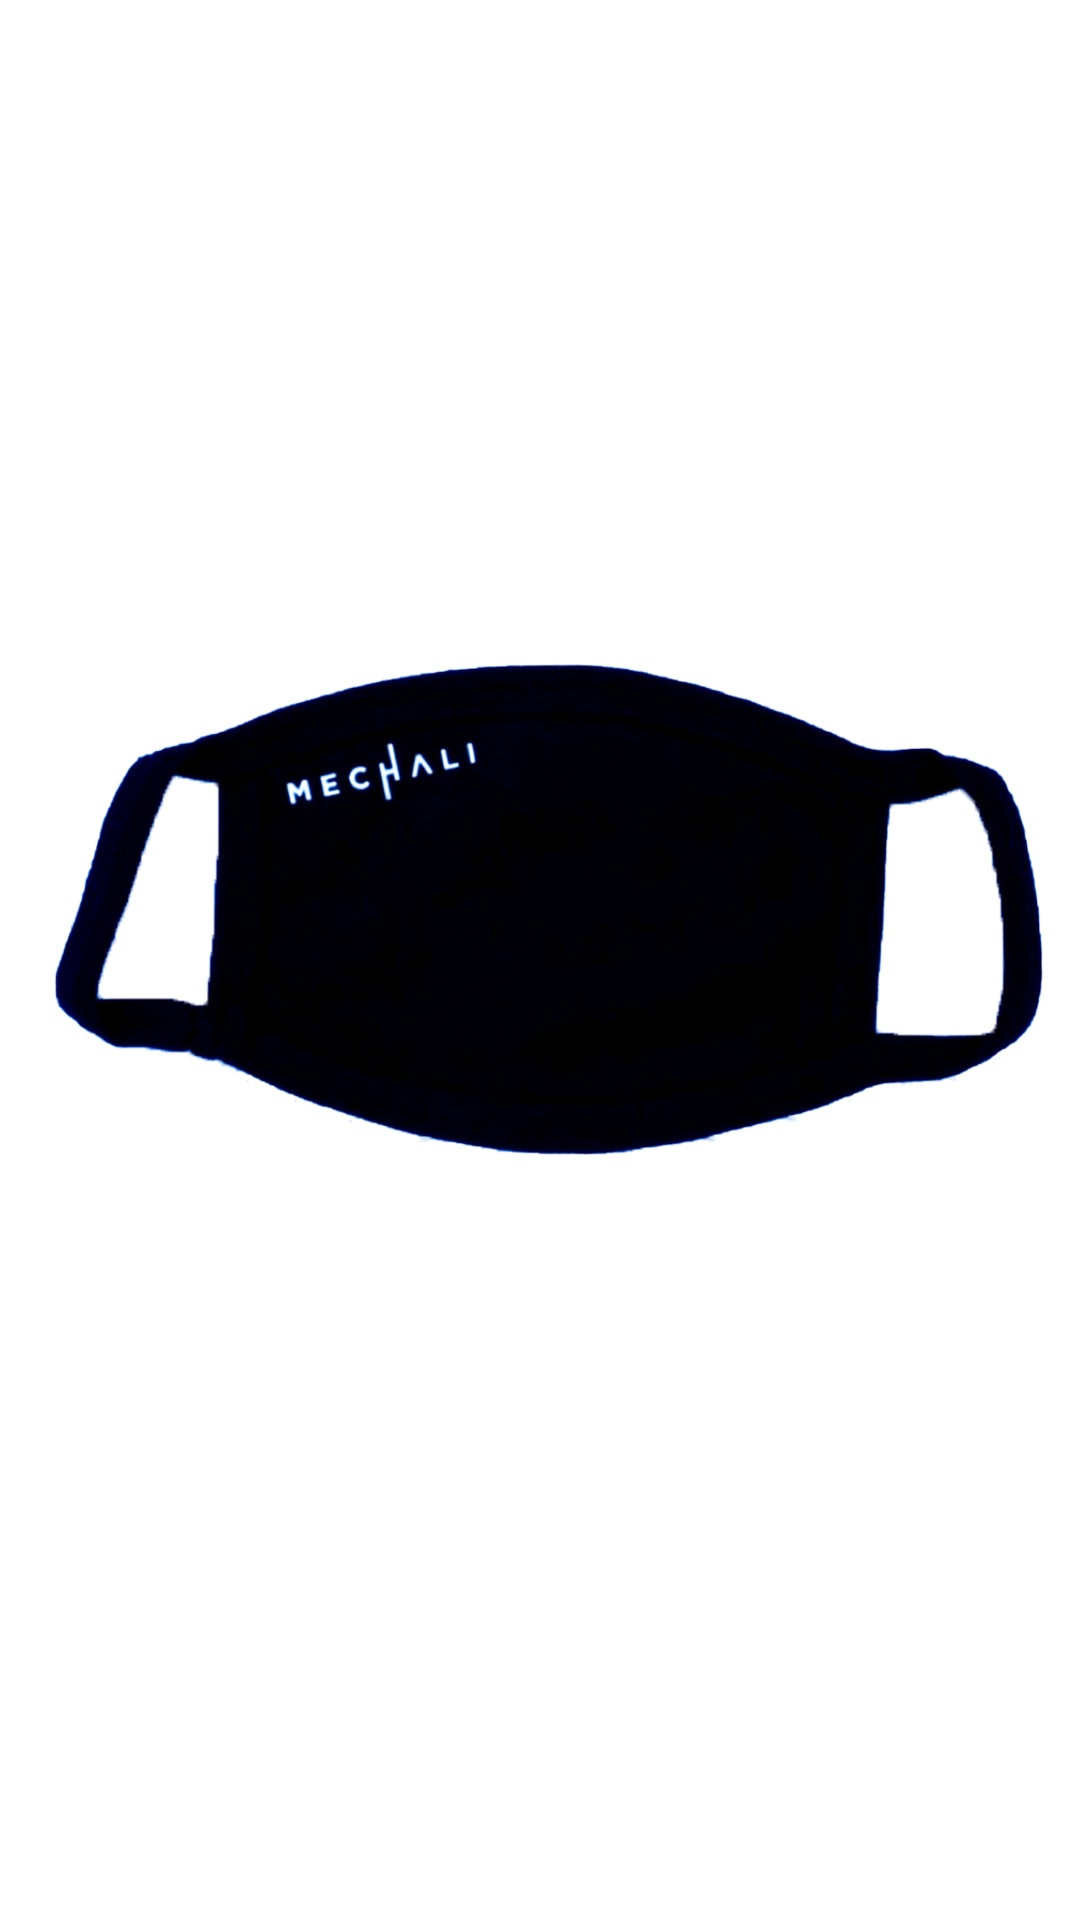 MECHALI PROTECTIVE FACE MASK V2